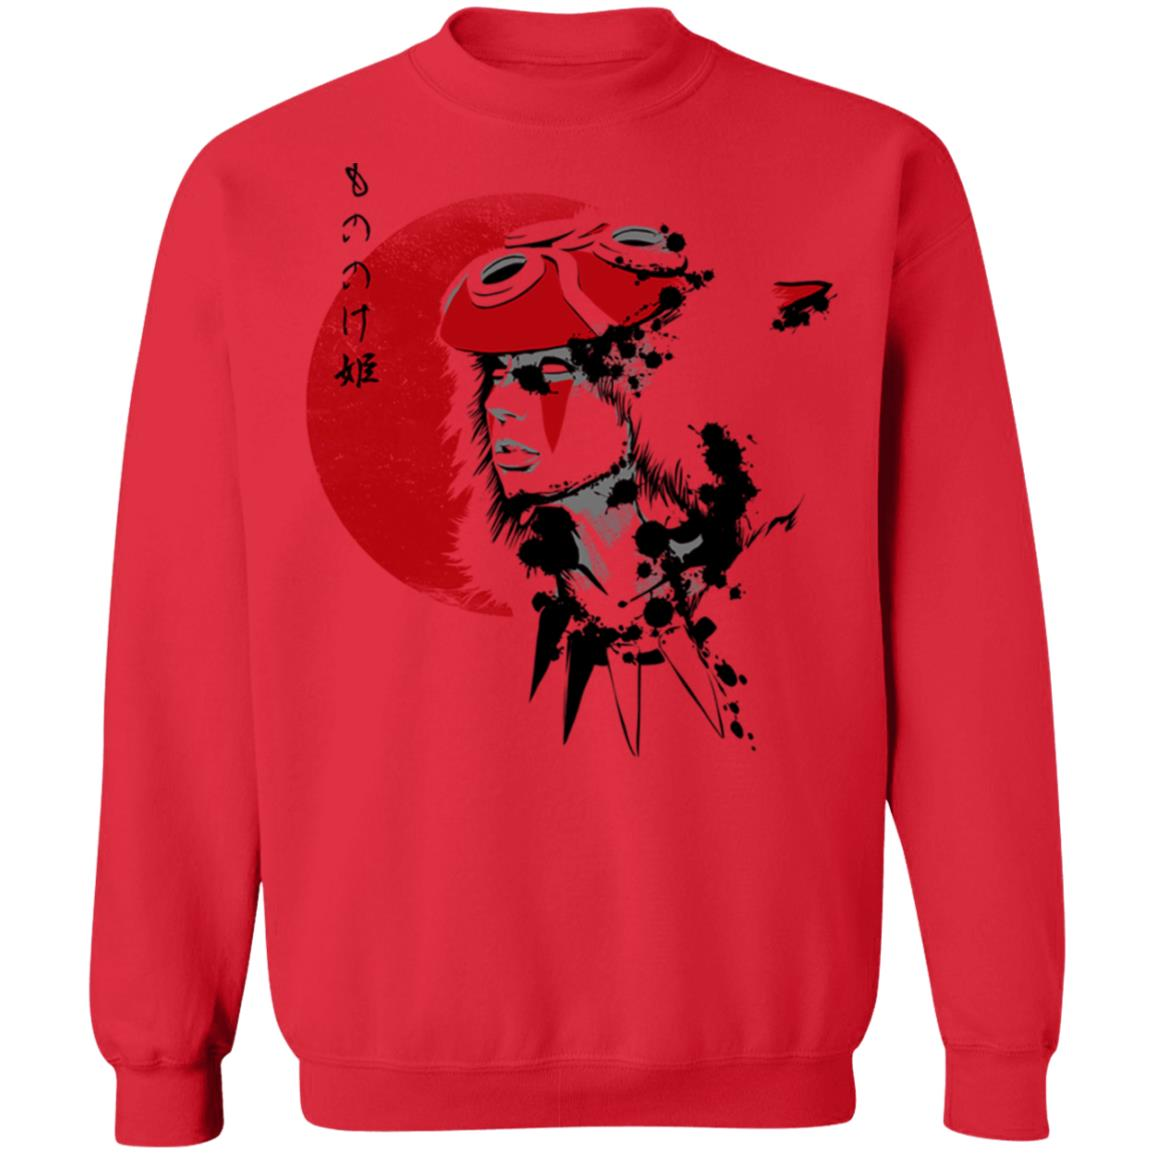 Princess Mononoke and the Red Moon Sweatshirt